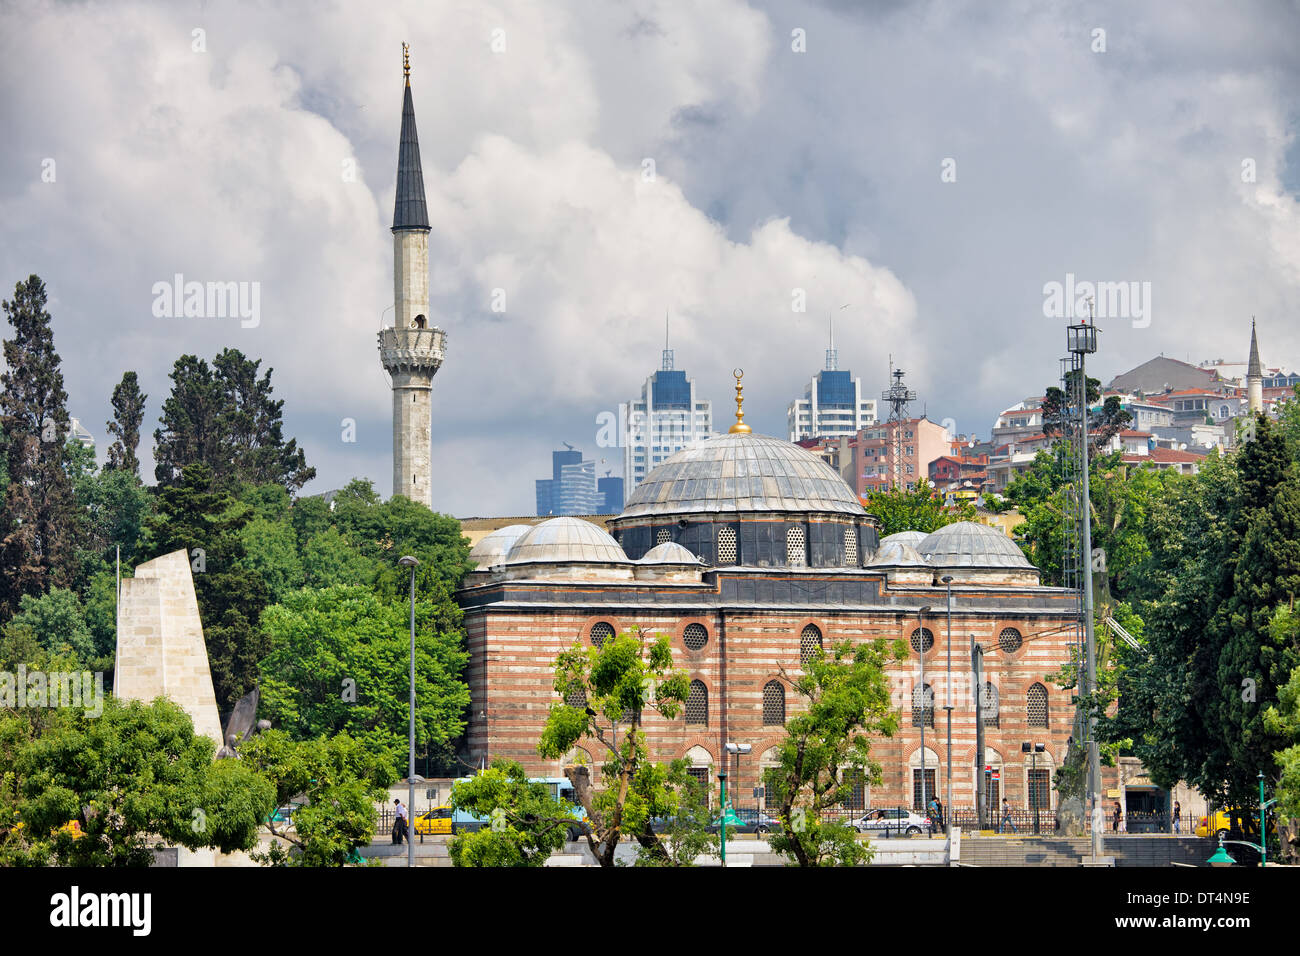 Sinan Pasha Mosque (Turkish: Sinan Pasa Camii) in Istanbul, Turkey. 16th century Ottoman style architecture, Besiktas Stock Photo